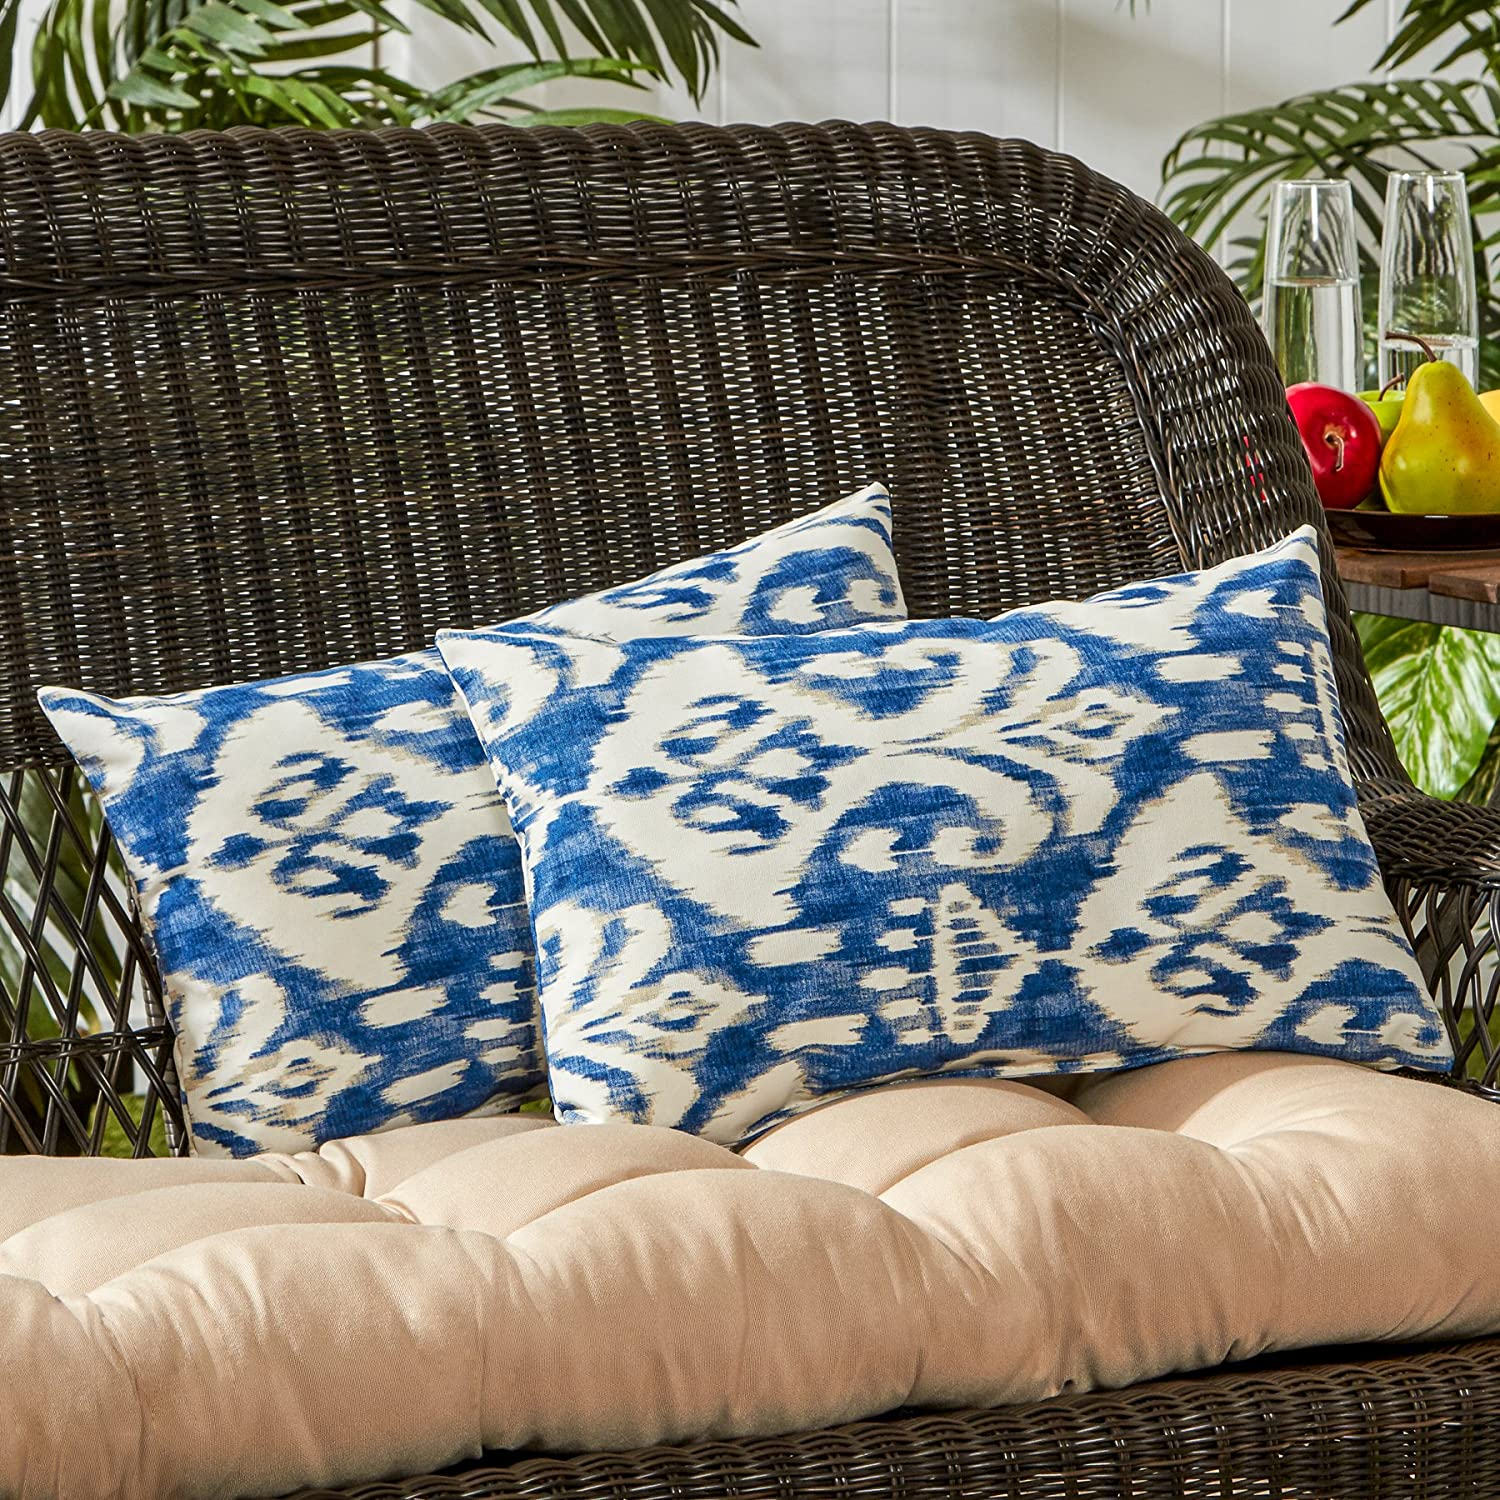 Greendale Home Fashions Rectangle Outdoor Accent Pillows in Coastal Ikat Set of 2 , Azule